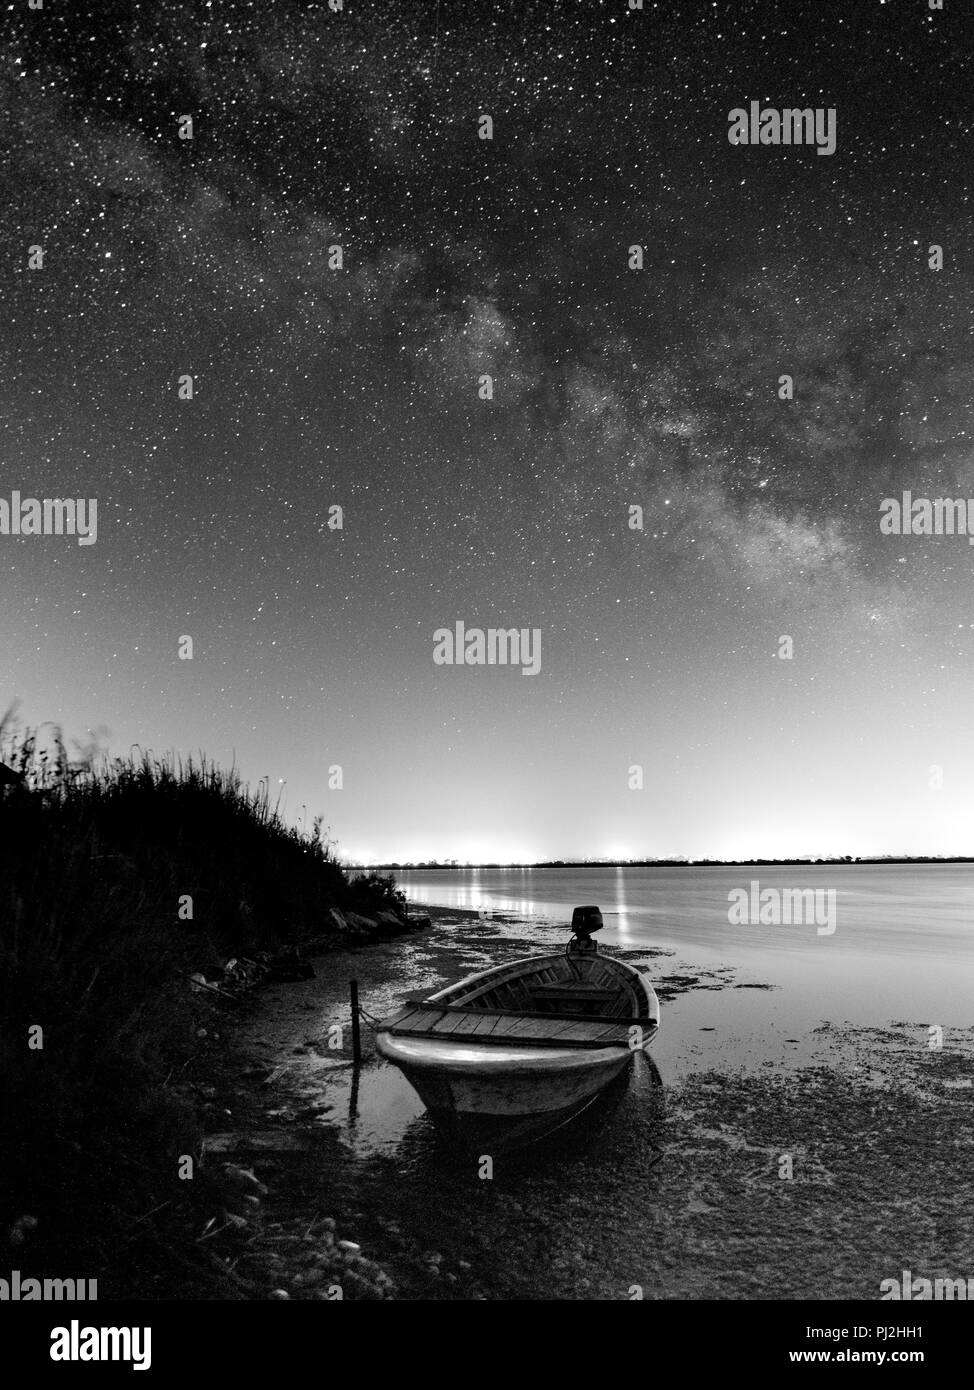 night landscape photography. lake boat and milky way - Stock Image